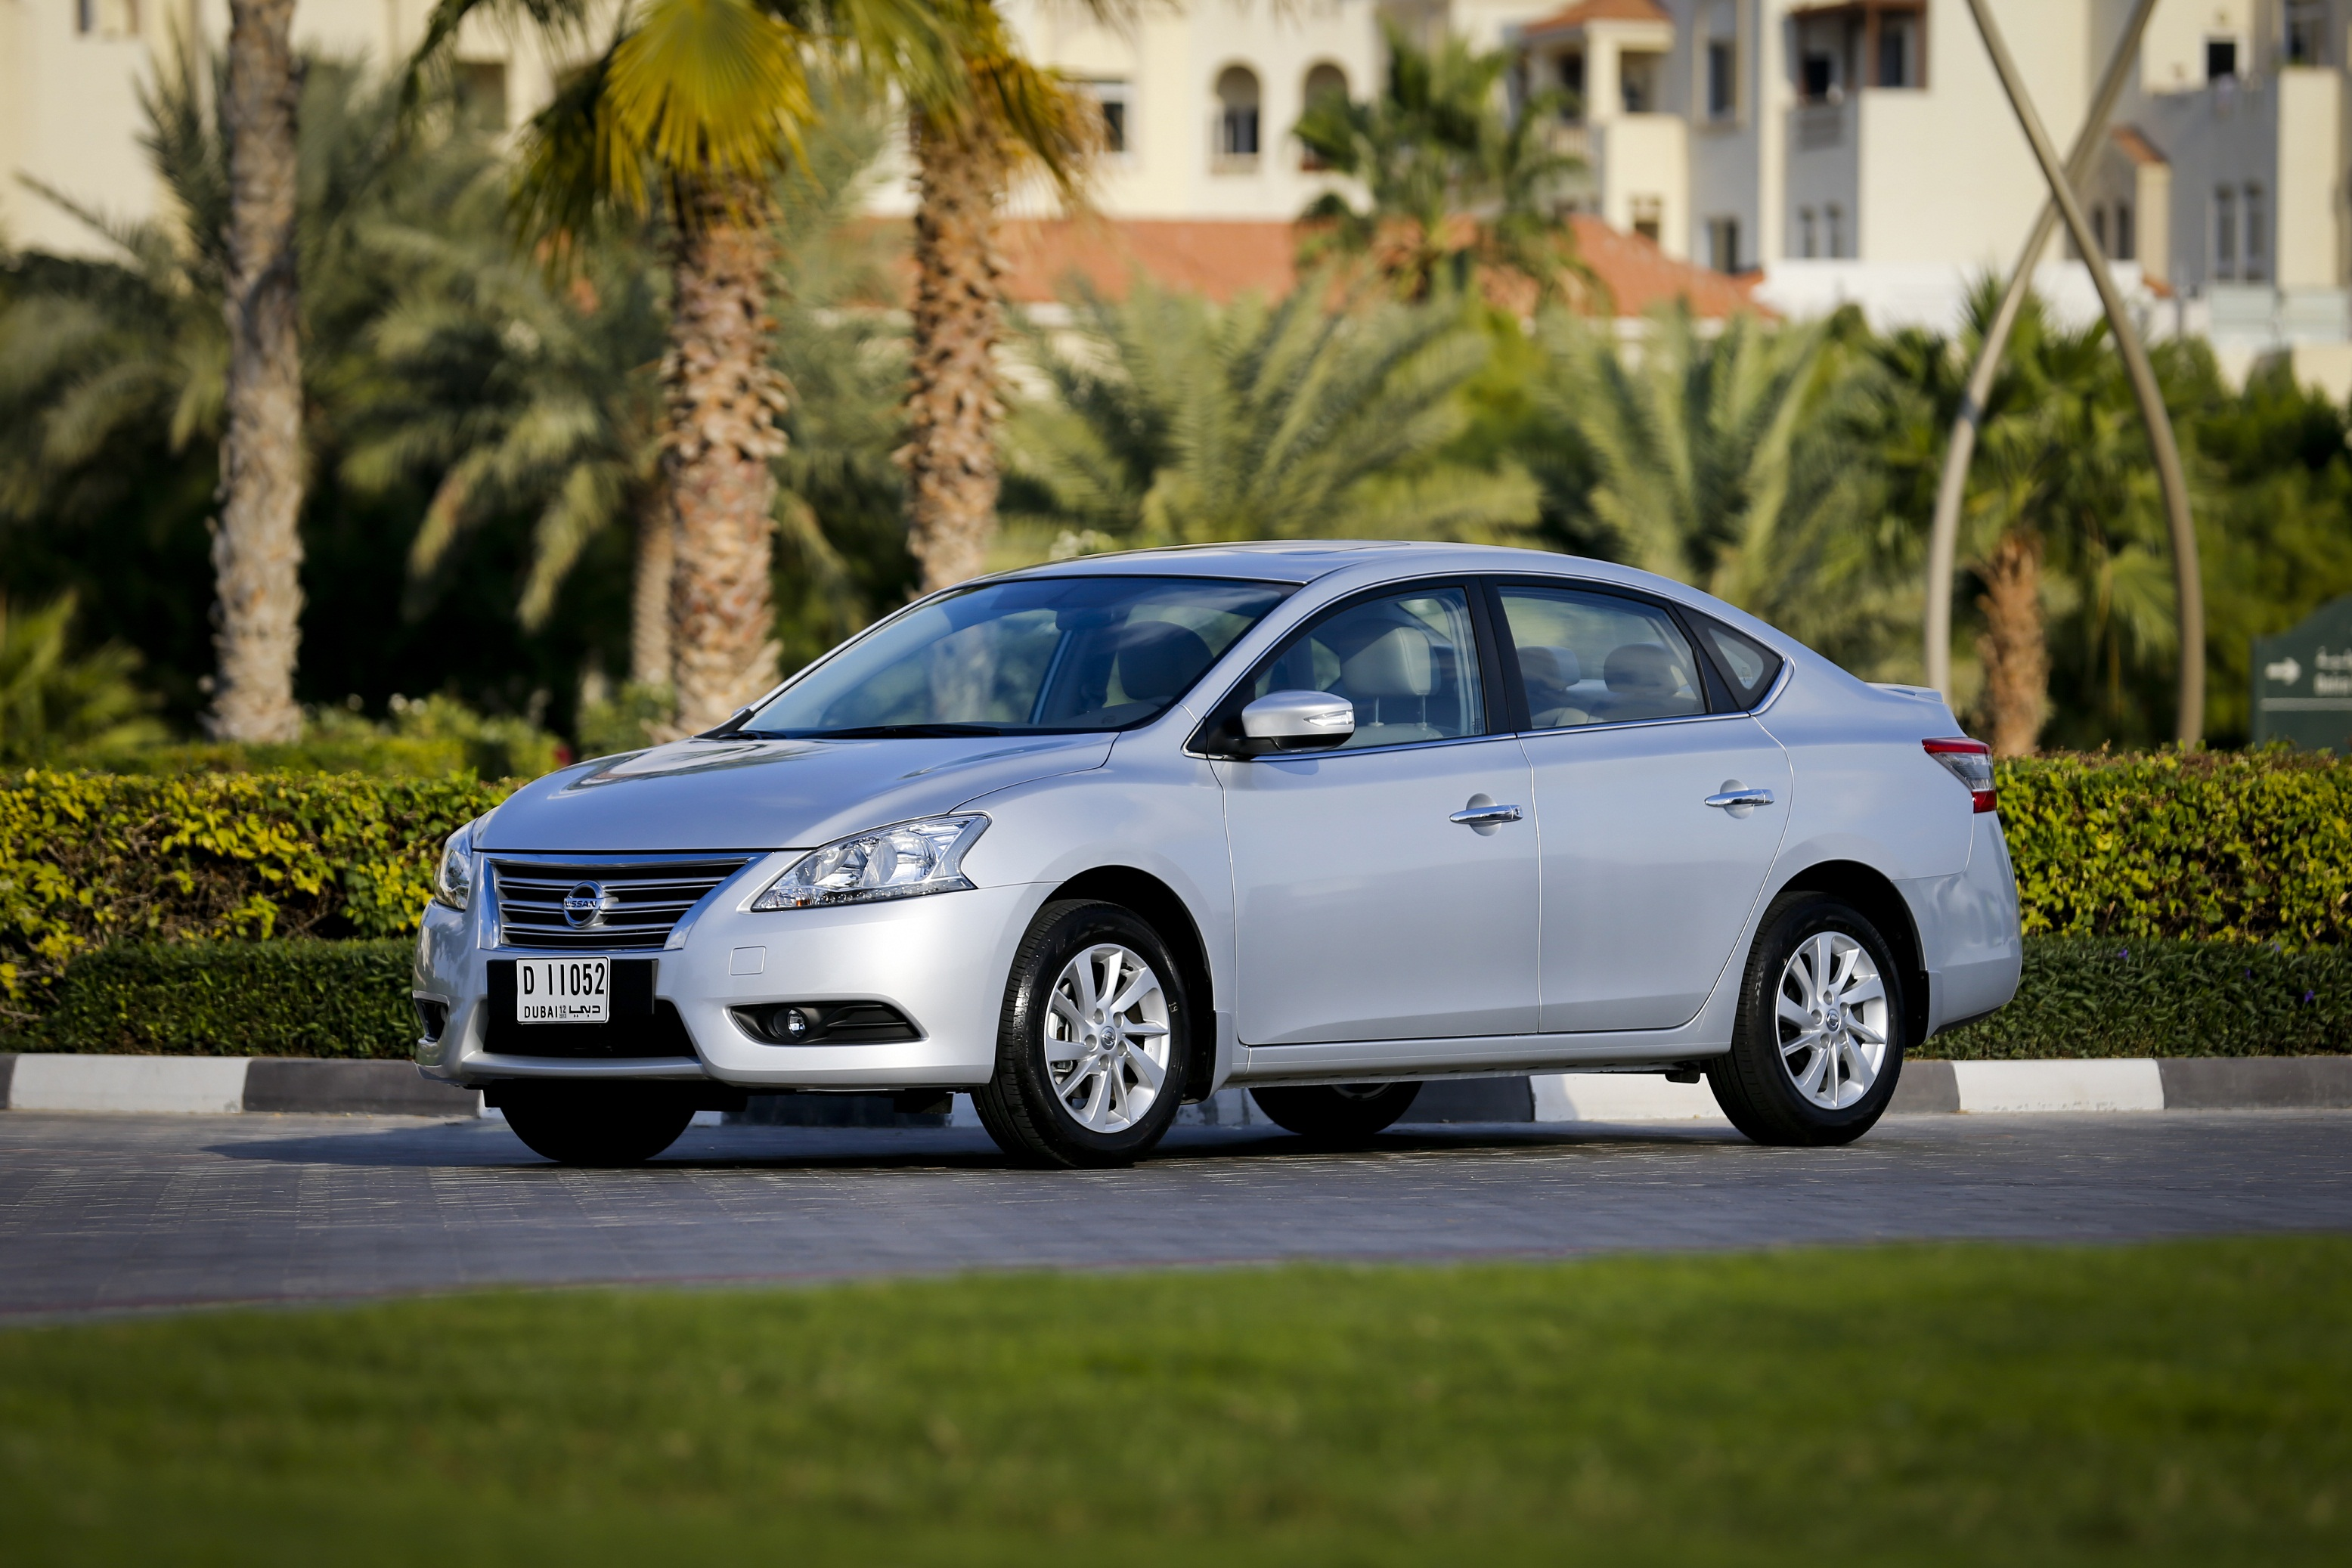 dartmouth nissan used auto sales sale en inventory sentra for img in s vehicle